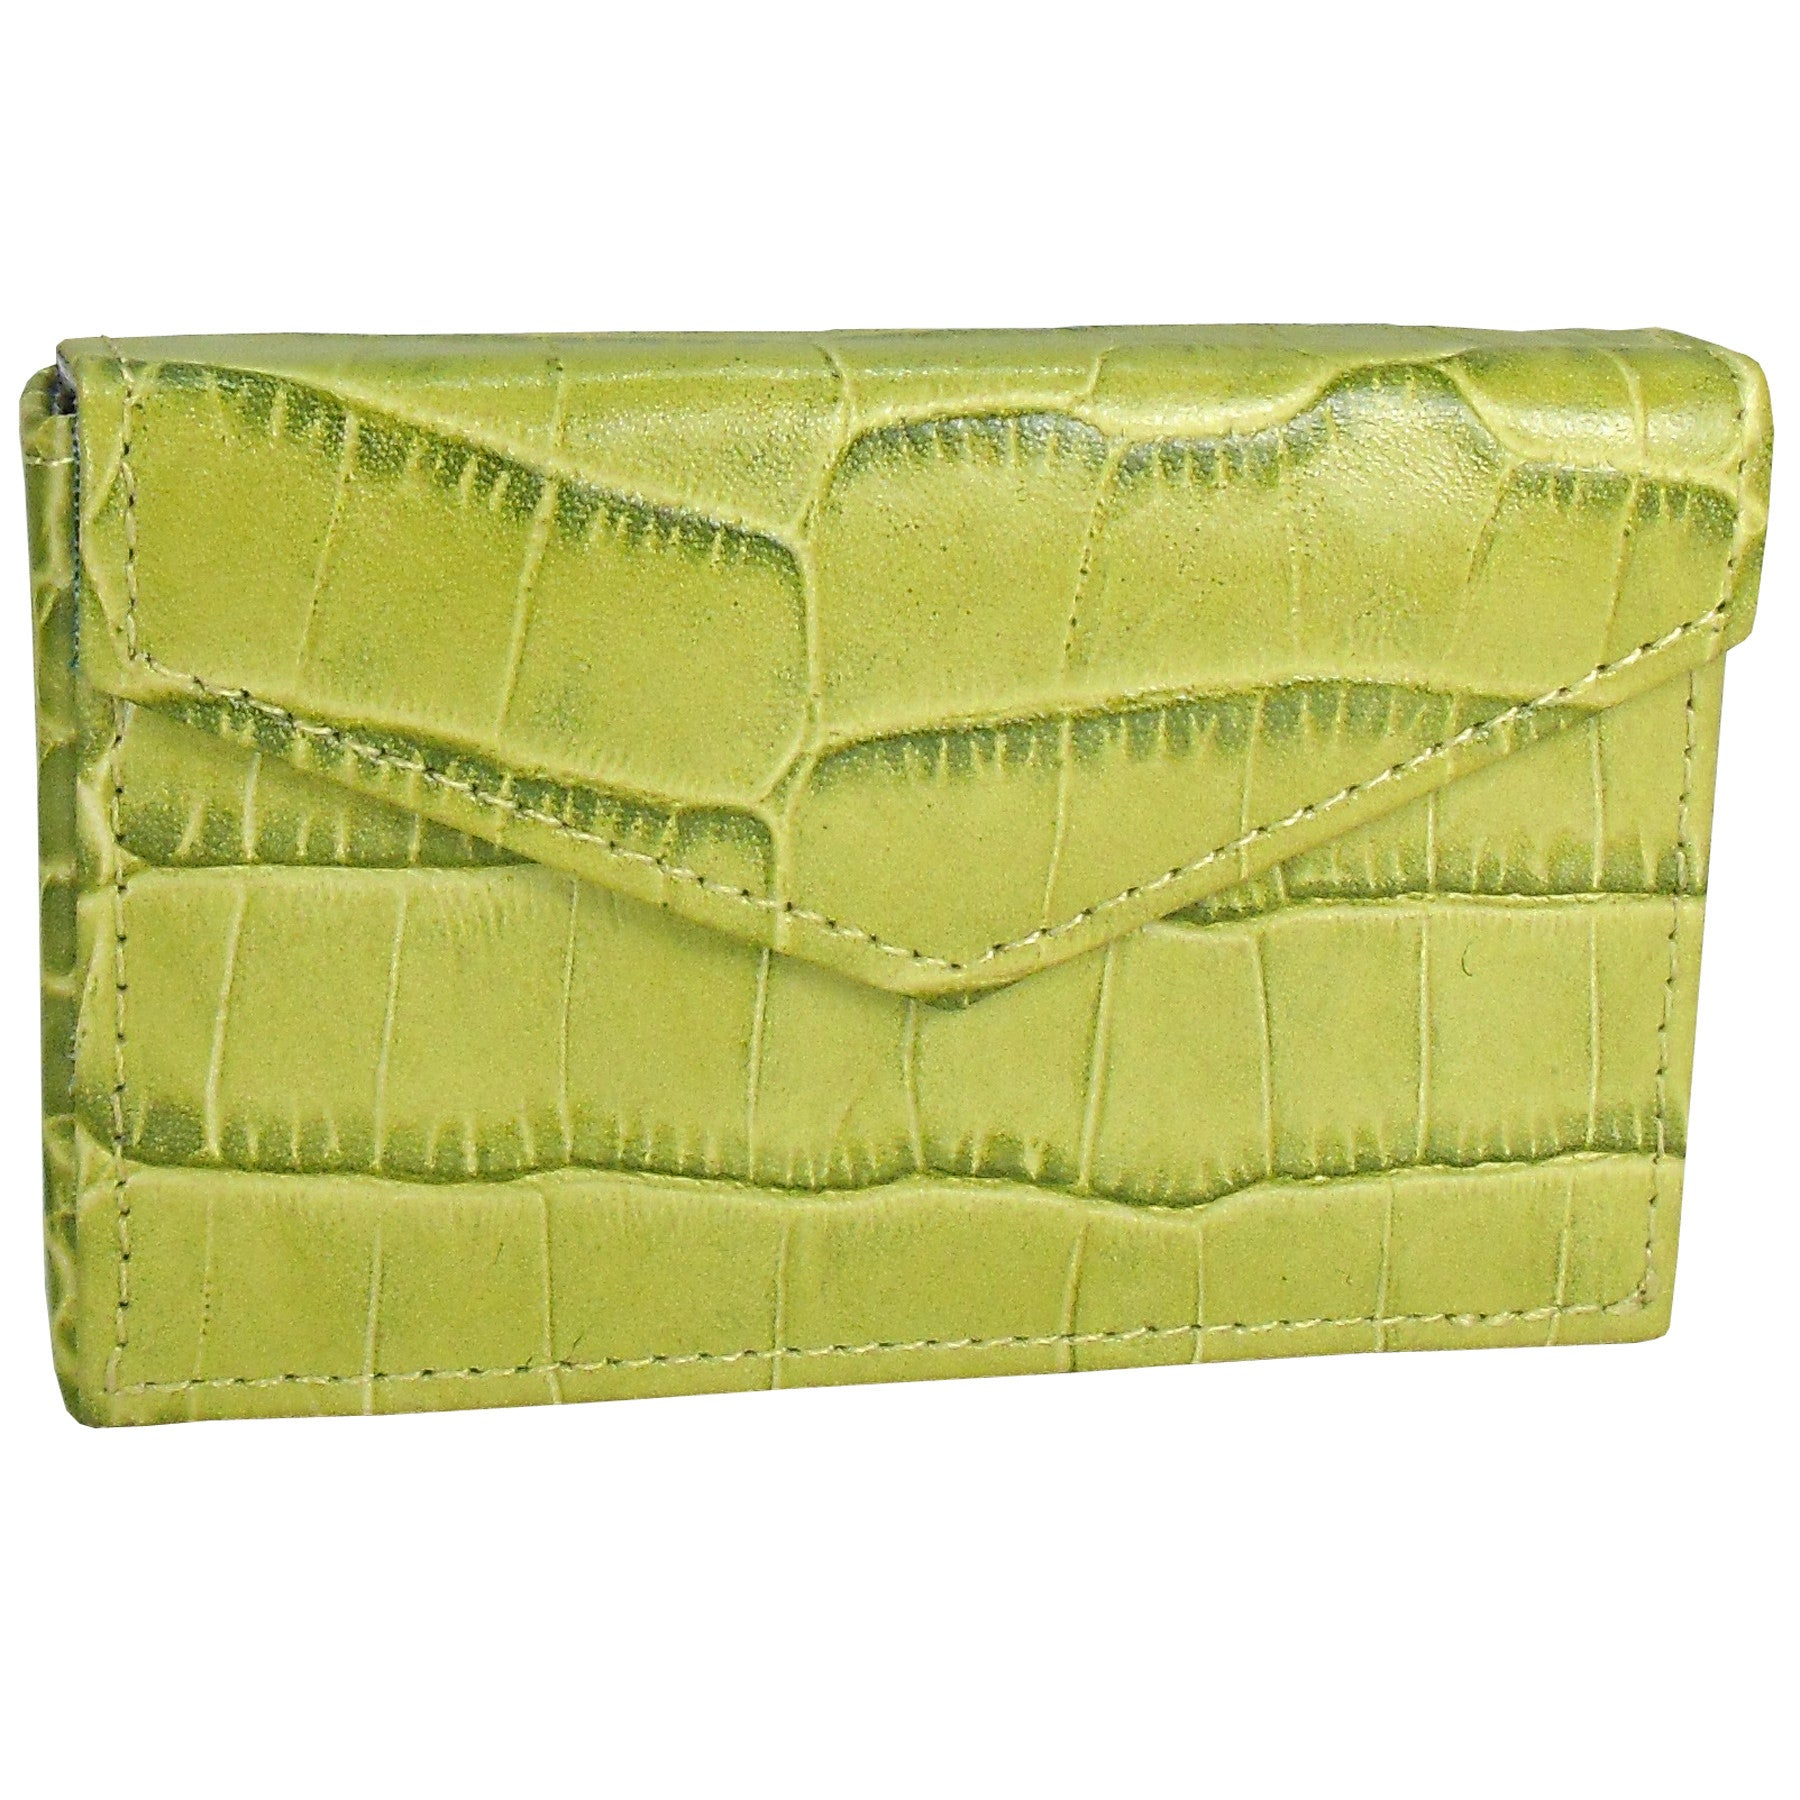 Alicia Klein leather card holder, turtle green